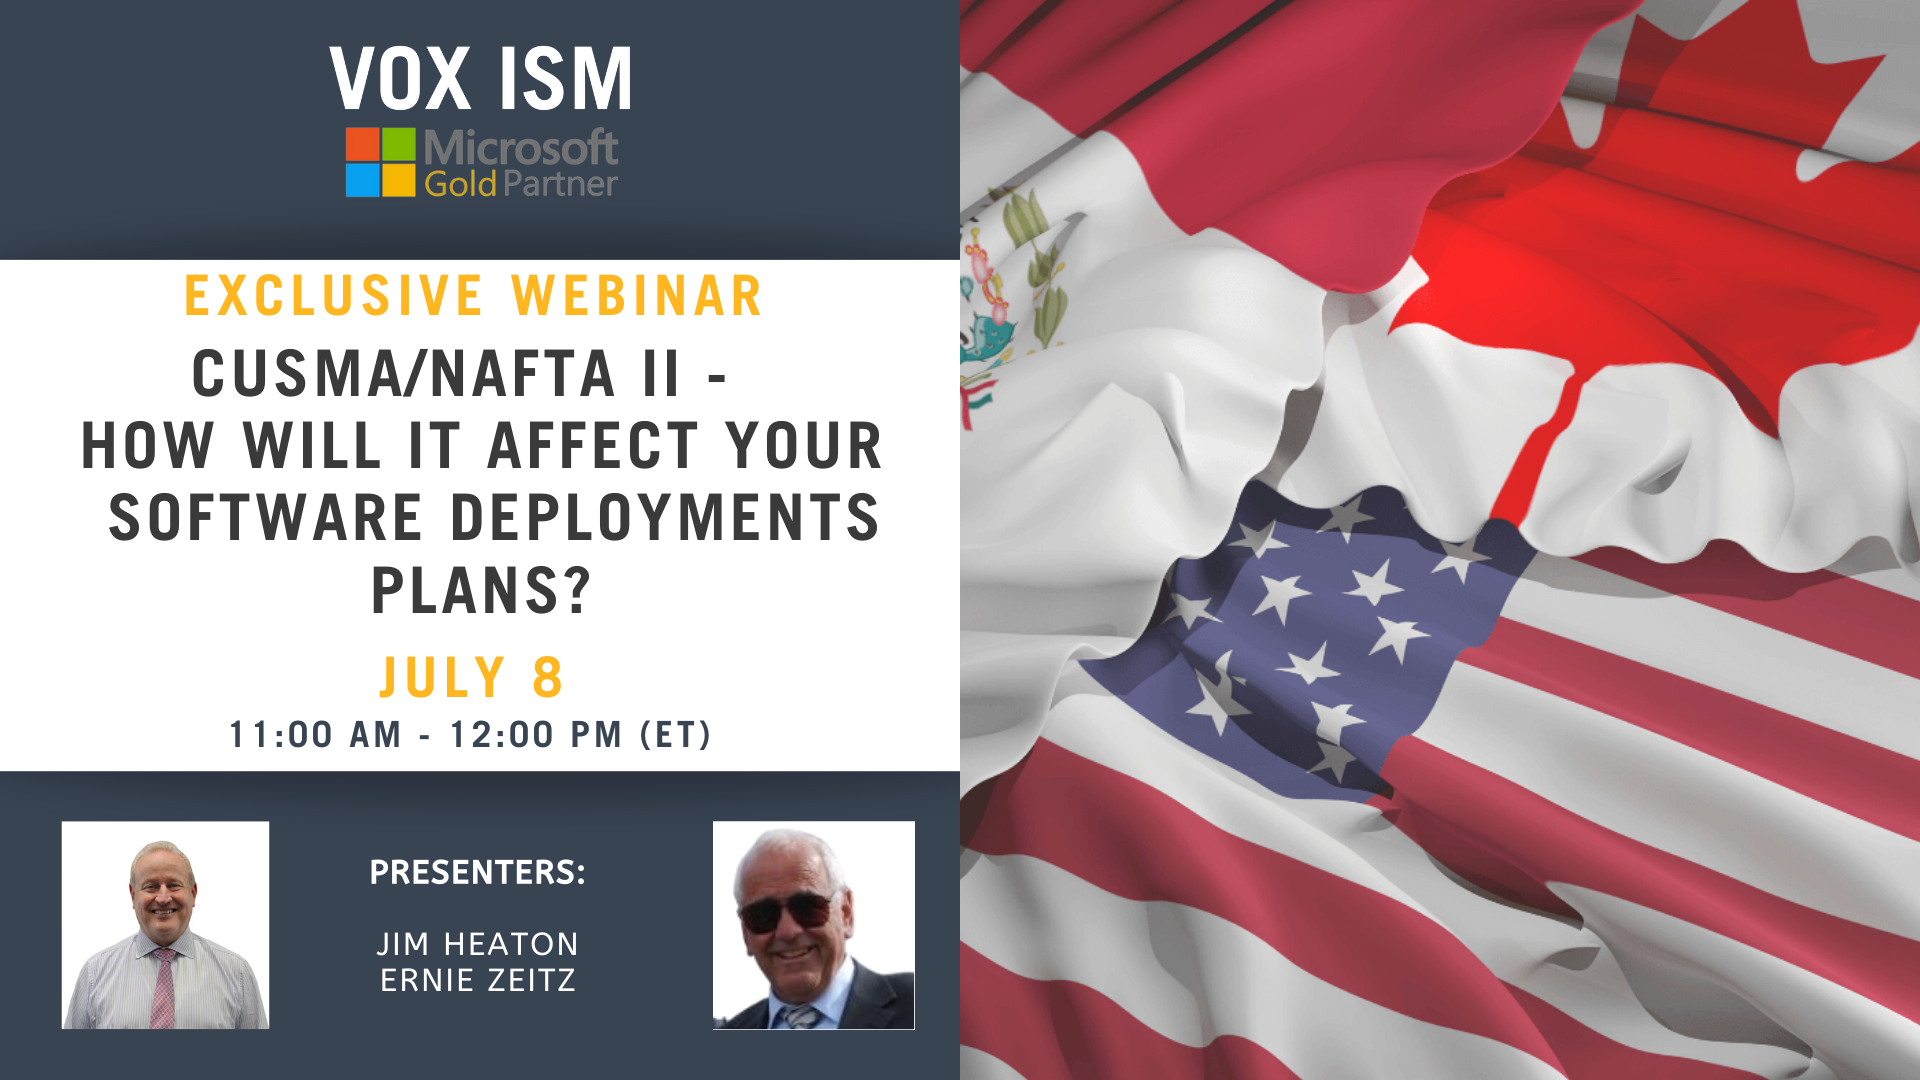 CUSMA /NAFTA II - How will it affect your software deployments plans? - July 8 - Webinar VOX ISM